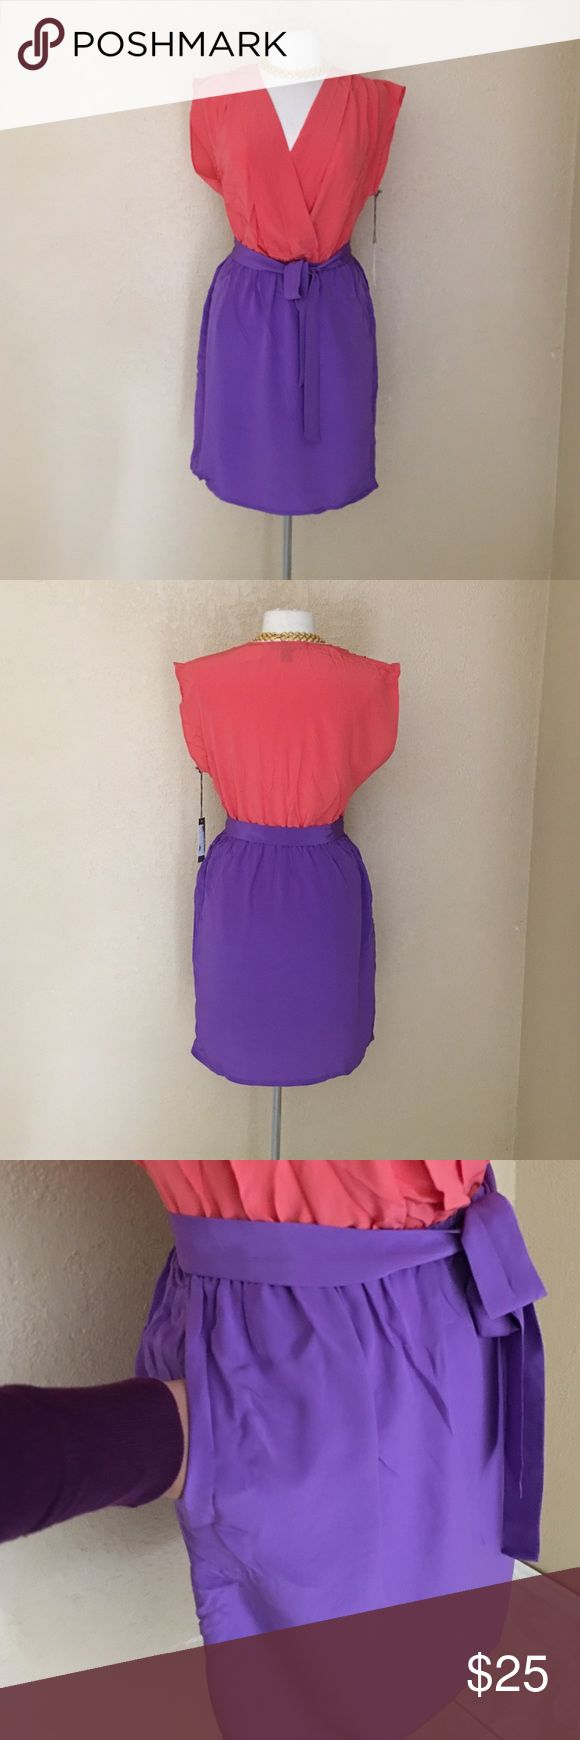 "Charlie Jade 100%silk dress Colorblock Dress by Charlie with a sorbet top and soft lavender skirt. Pleating detail along shoulder seam. Self fabric waist belt with side seam loops. Pockets at front. Approx. length from shoulder to hem: 37 1/2"".  100% Silk. Charlie Jade Dresses"